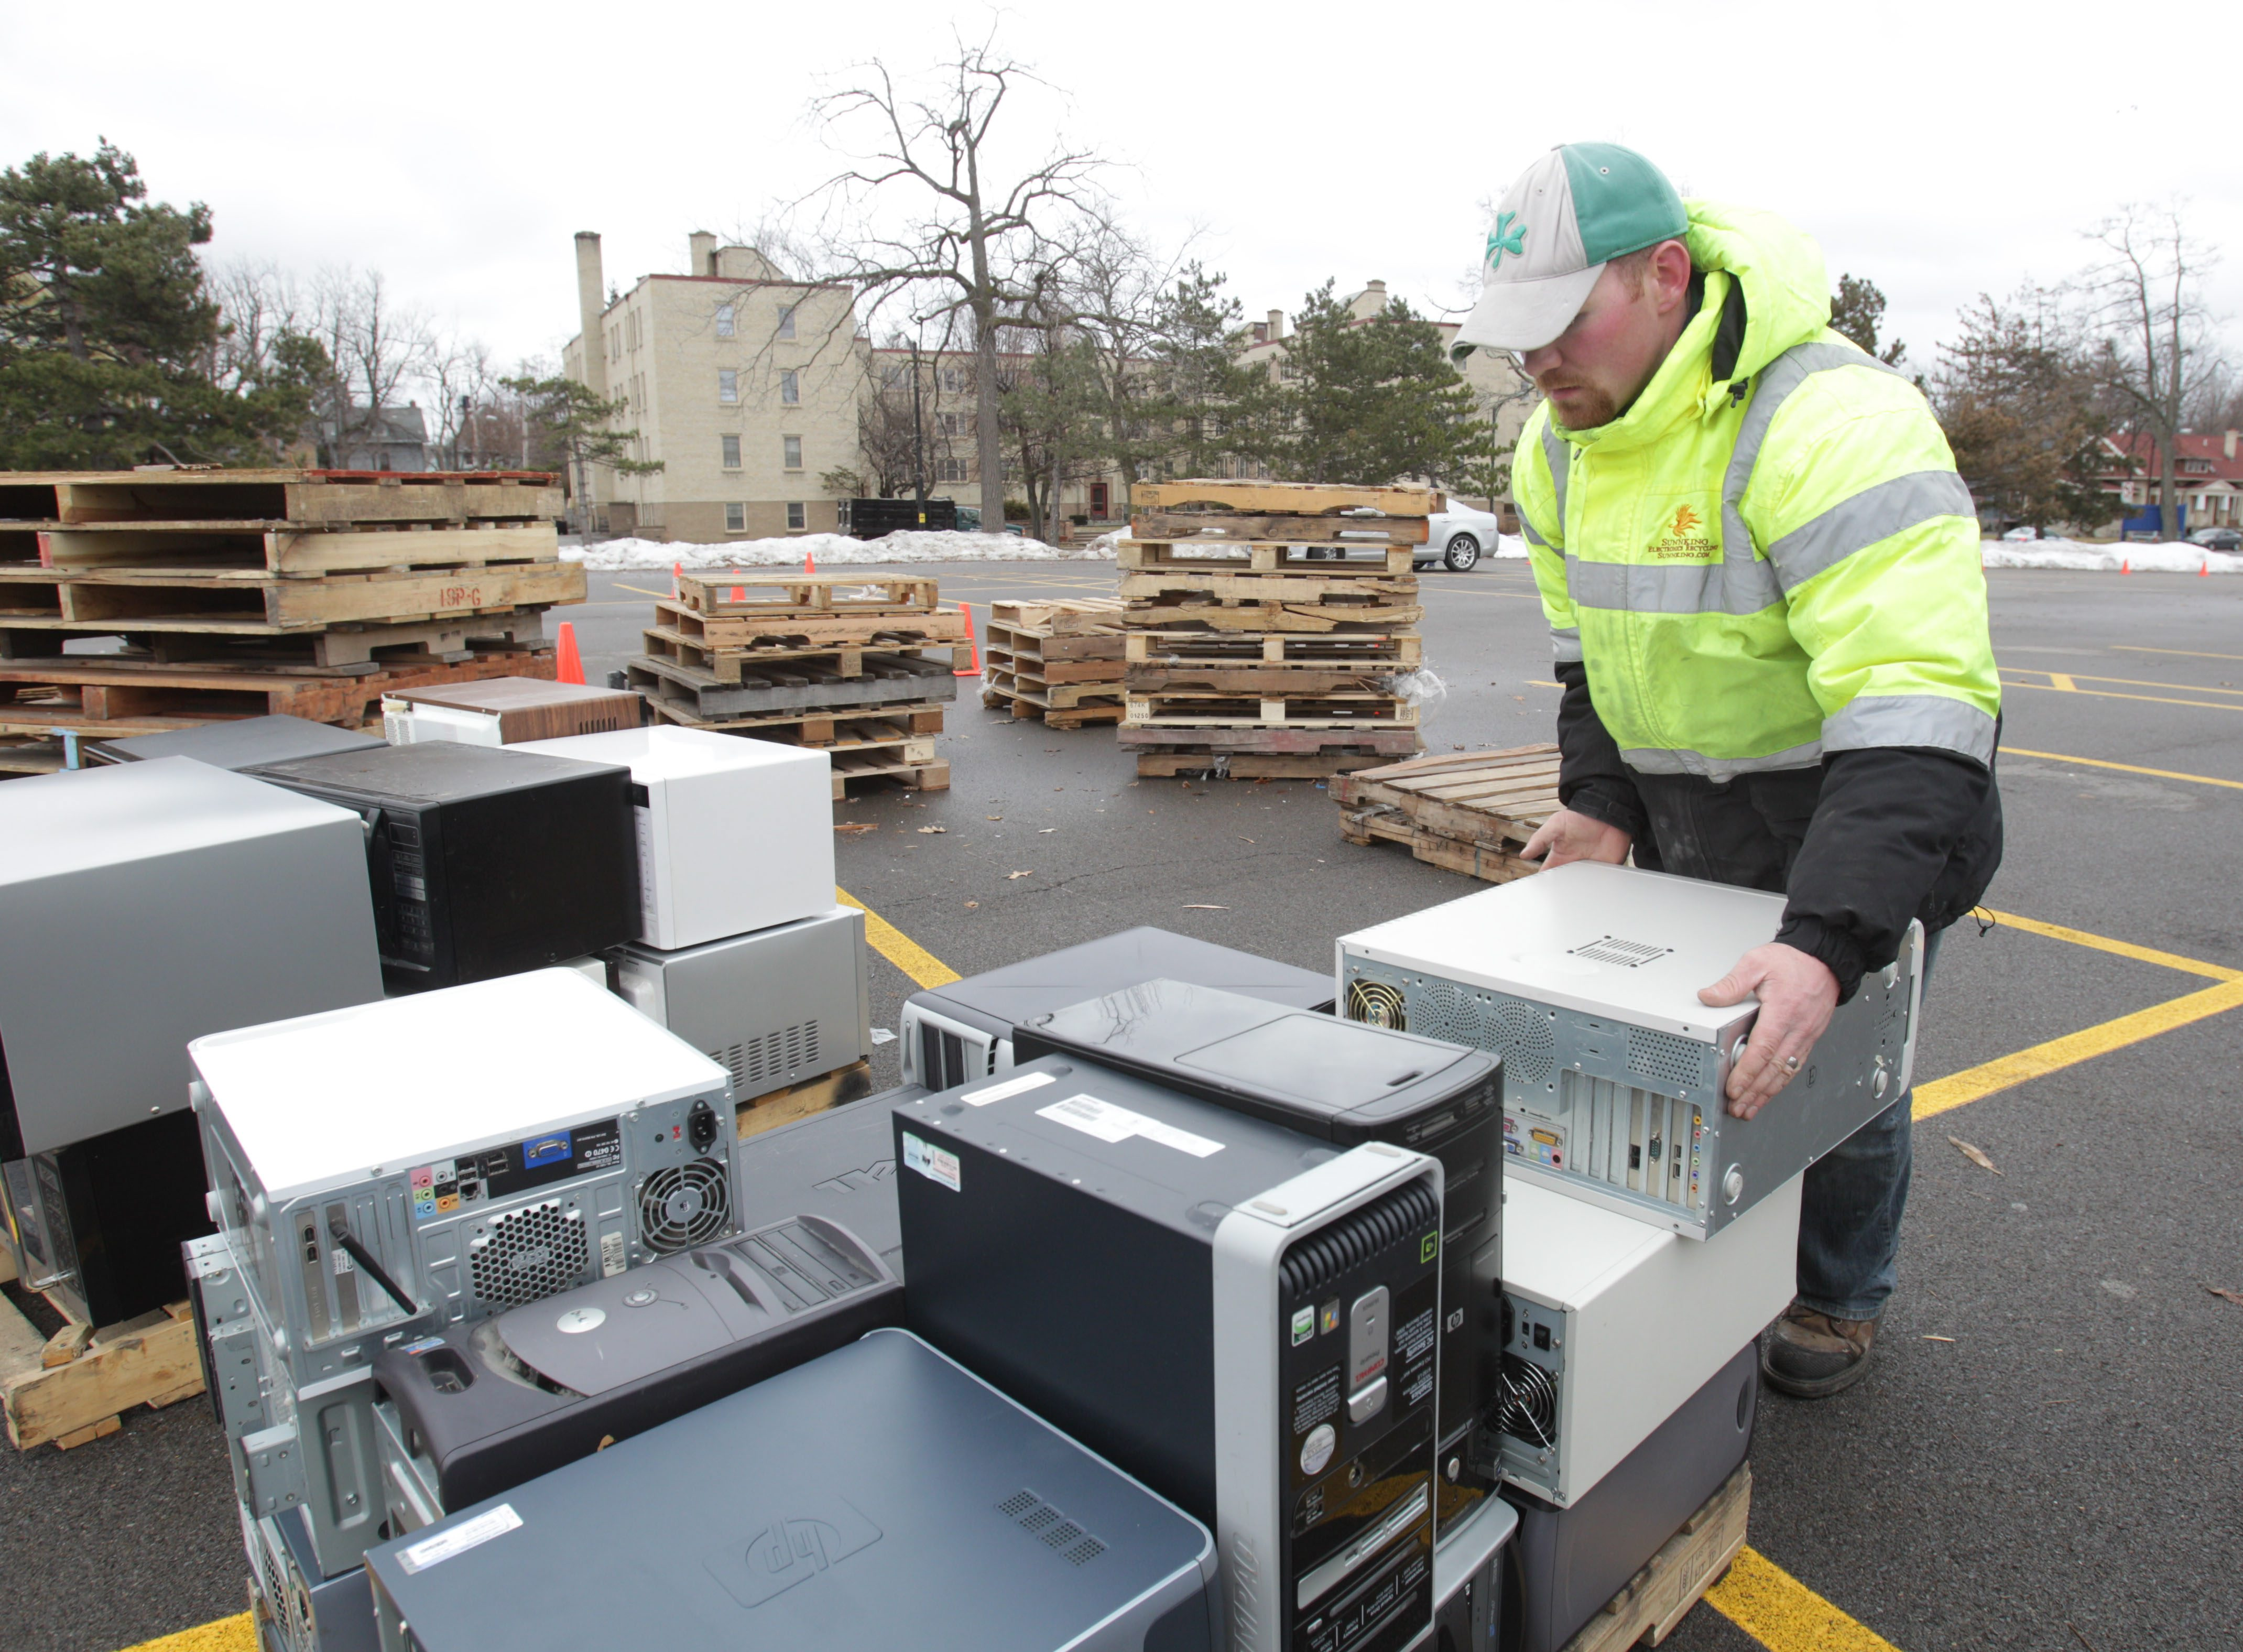 An electronics recycling event is scheduled Feb. 3. (Sharon Cantillon/News file photo)